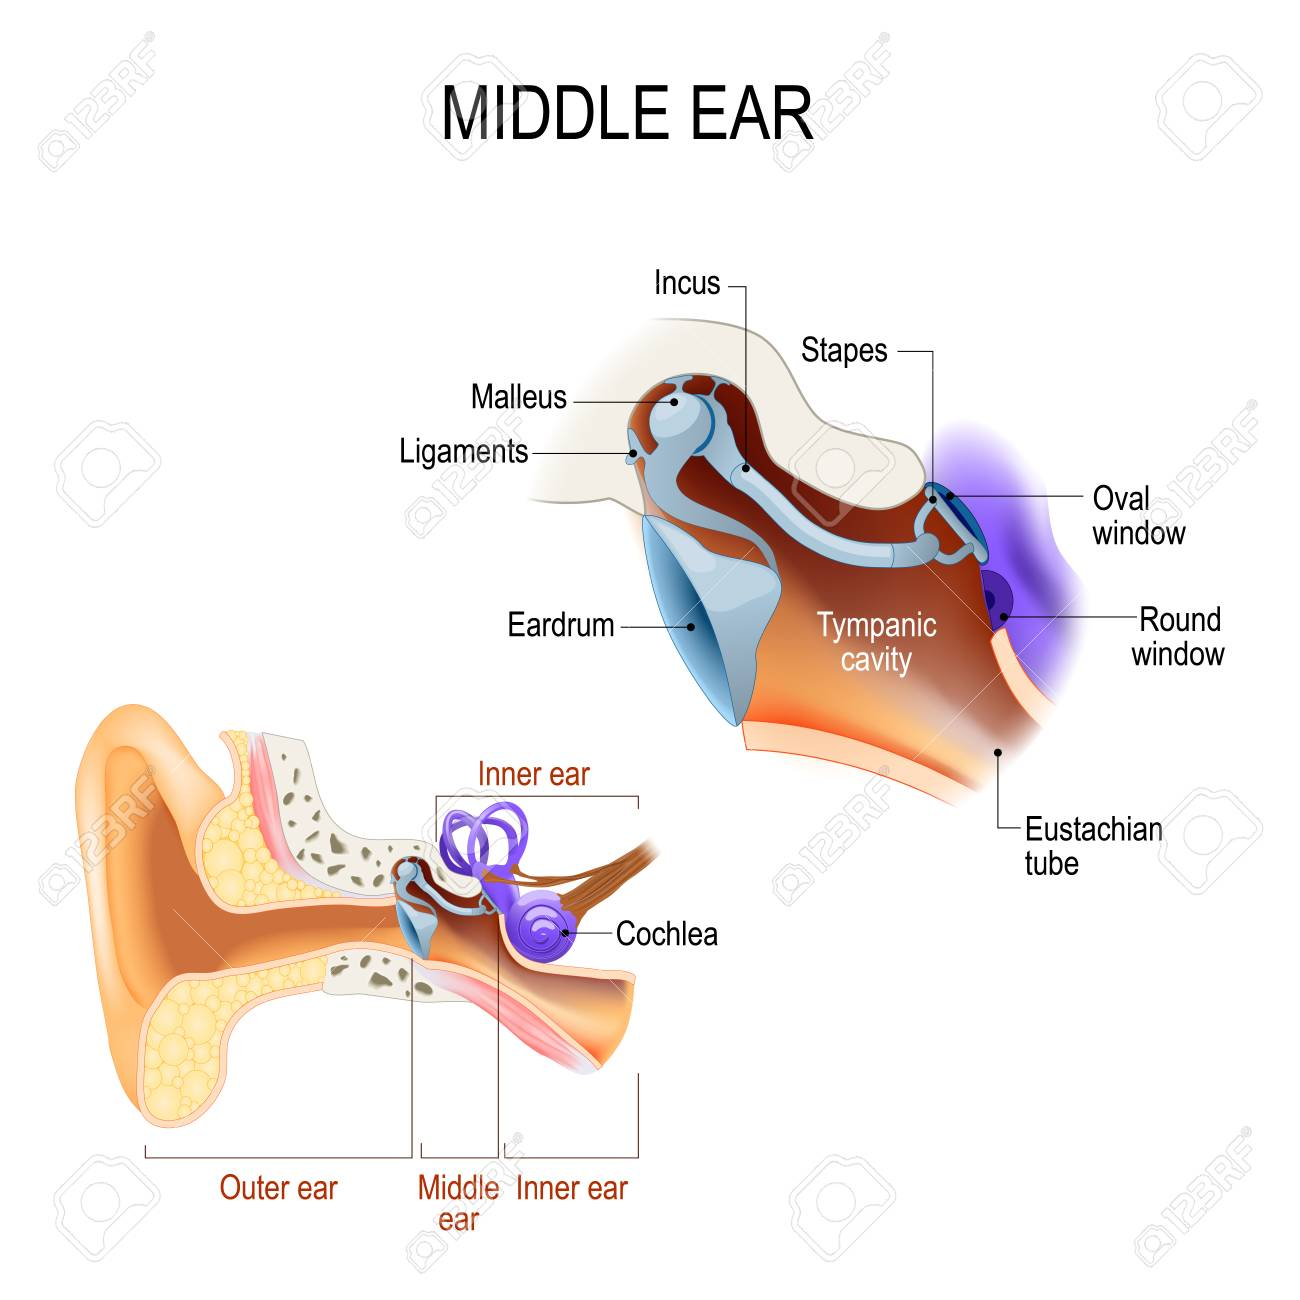 three ossicles: malleus, incus, and stapes (hammer, anvil, and stirrup)   the ossicles directly couple sound energy from the ear drum to the oval  window